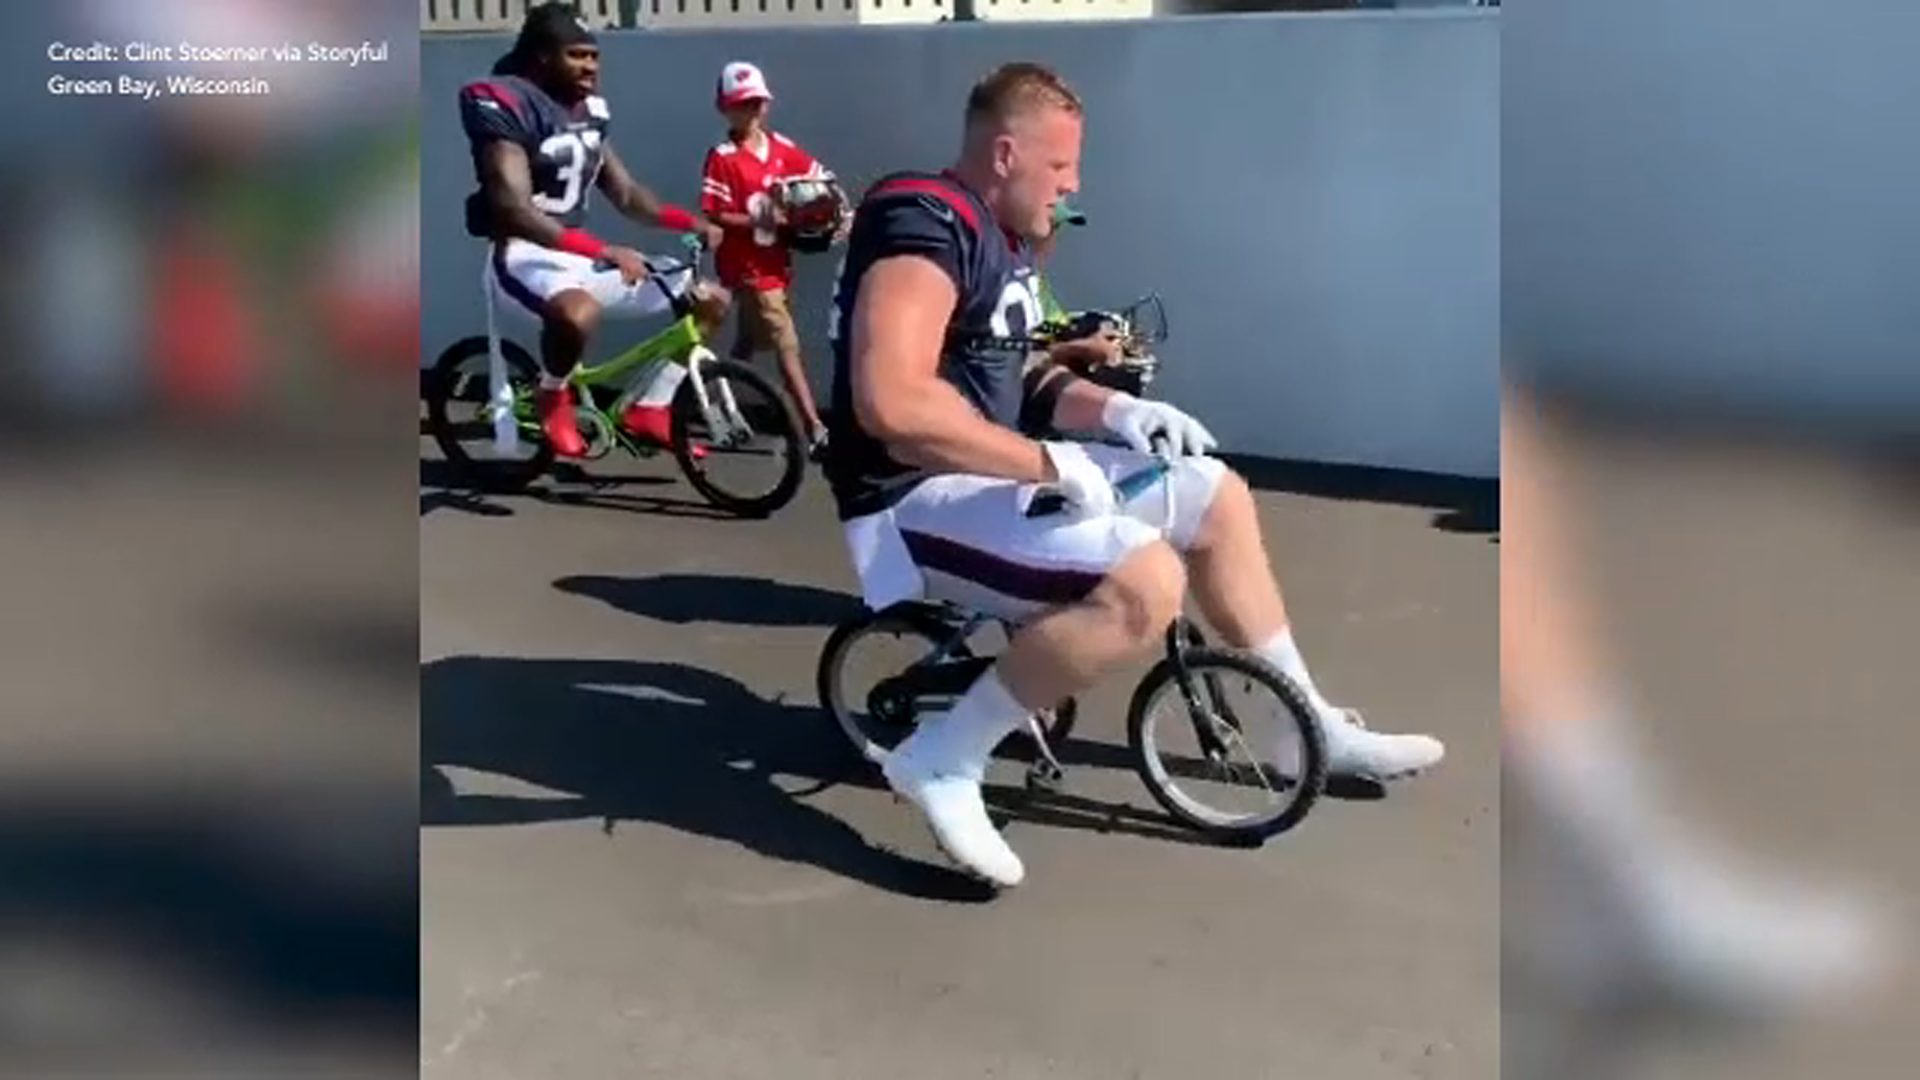 Oops Nfl Star J J Watt Breaks Kid S Bike In Green Bay 6abc Philadelphia